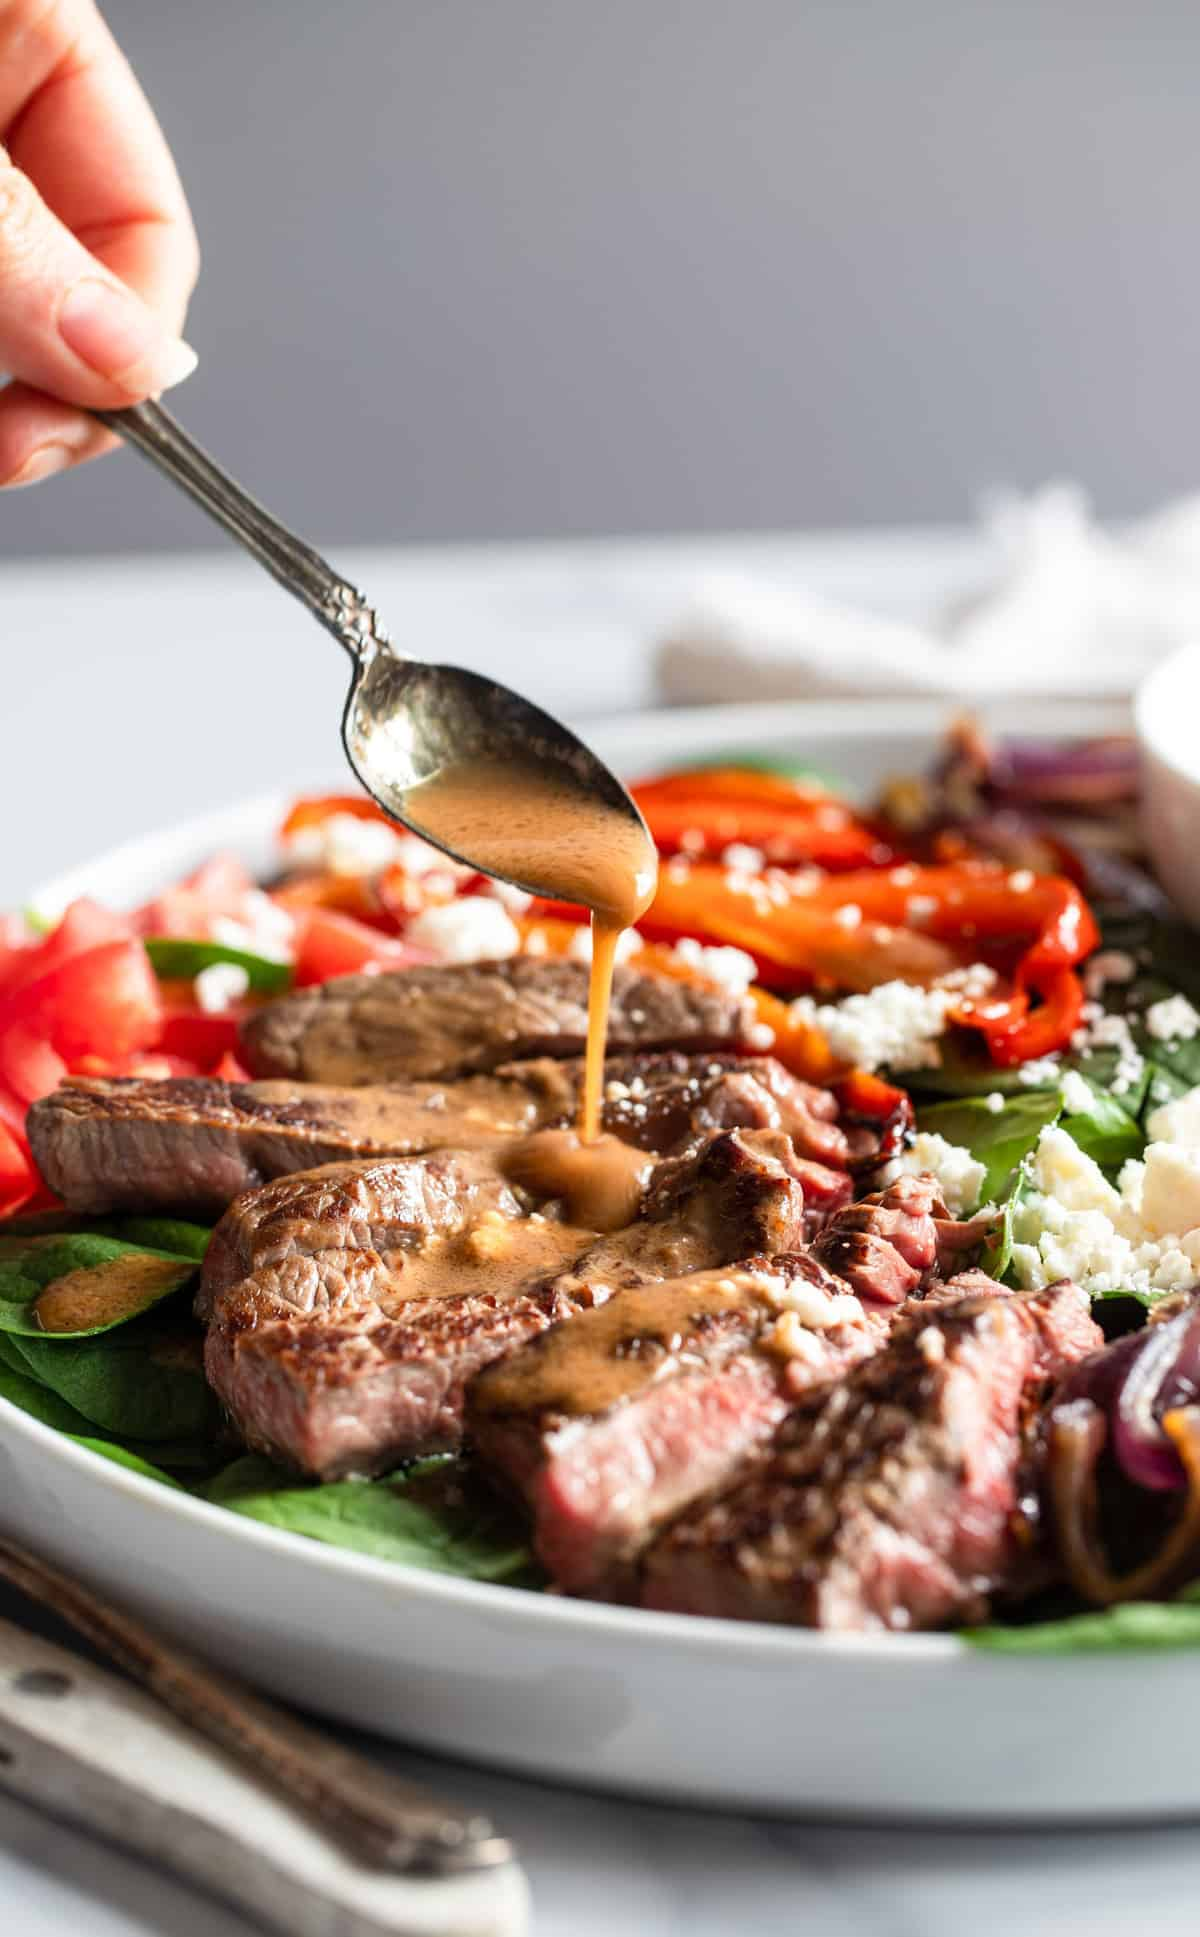 Balsamic Steak Salad being served with sauce